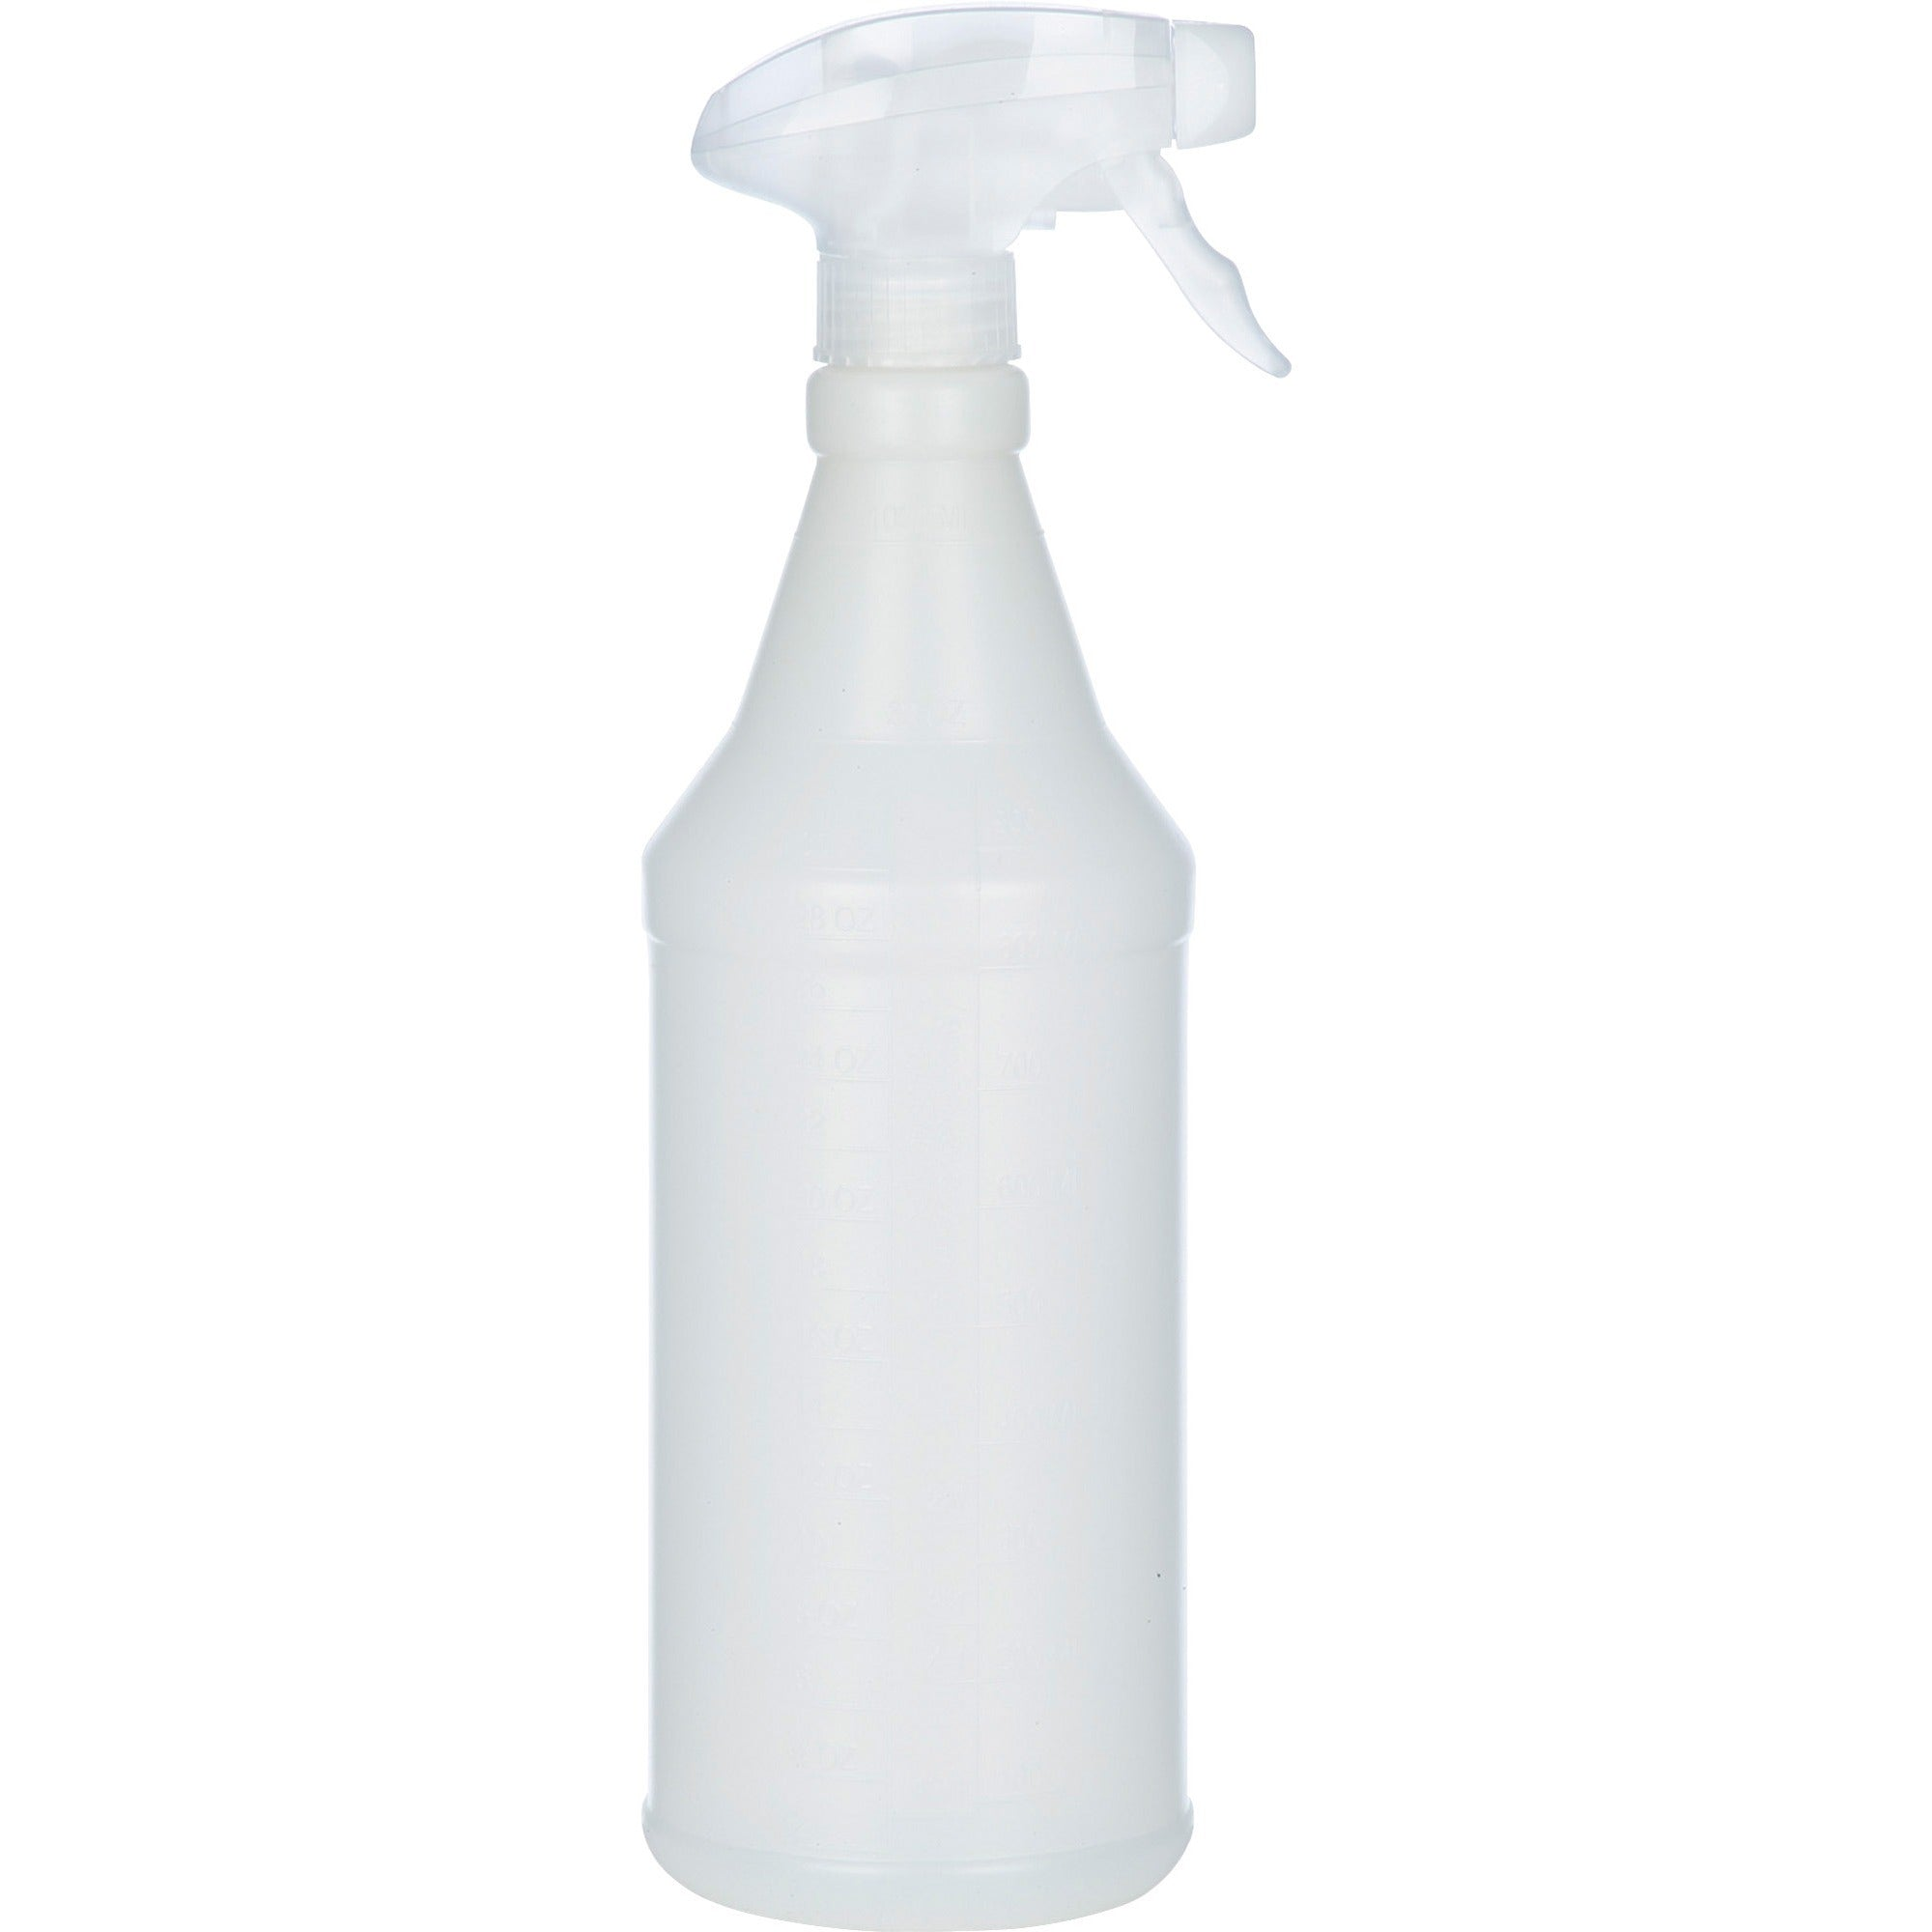 SKILCRAFT 32 oz Trigger Opaque Spray Bottle - Each (In Stock)